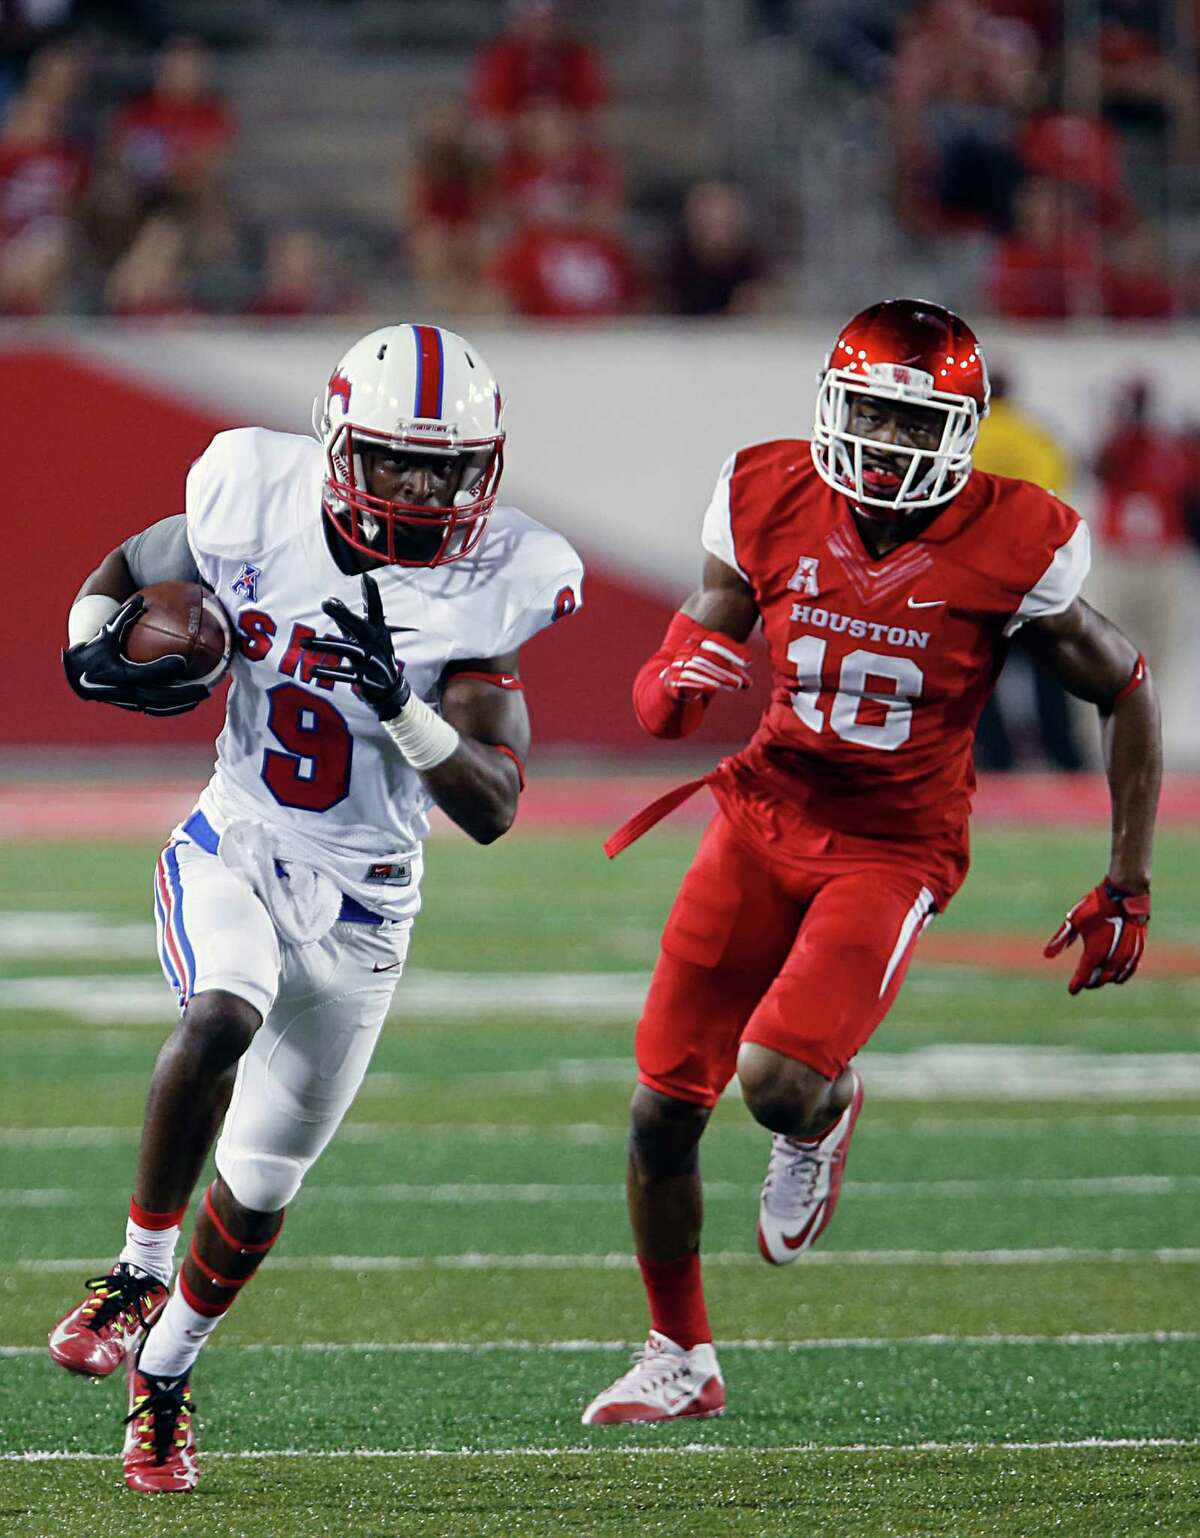 Southern Methodist Mustangs wide receiver Shelby Walker left, breaks away from Houston Cougars safety Adrian McDonald during the first half of men's college football game action at TDECU Stadium Thursday, Oct. 8, 2015, in Houston.